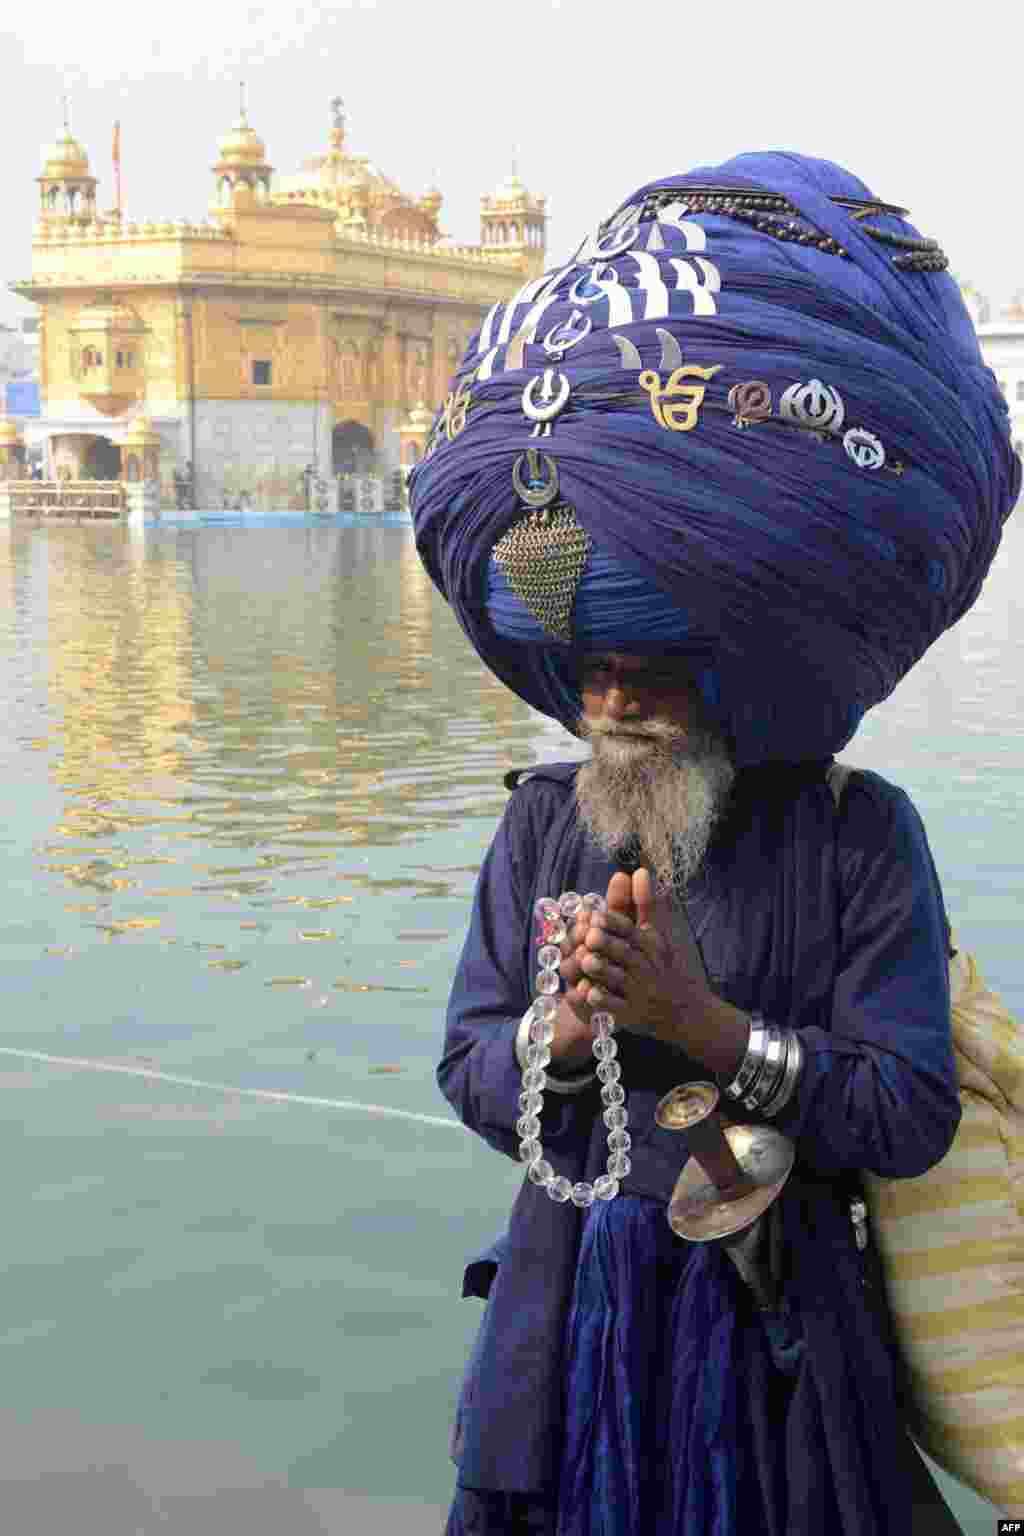 An Indian member of the Sikh Nihang Army wears a turban of more than 300 meters in length at the Maghi Mela festival at the Sikh Shrine Golden Temple in Amritsar, India. Maghi Mela follows the Lohri or harvest festival and commemorates fighters in the Battle of Khidrana fought between the Mughal Army and the 10th Sikh Guru, Gobind Singh Ji. (AFP/Narinder Nanu)